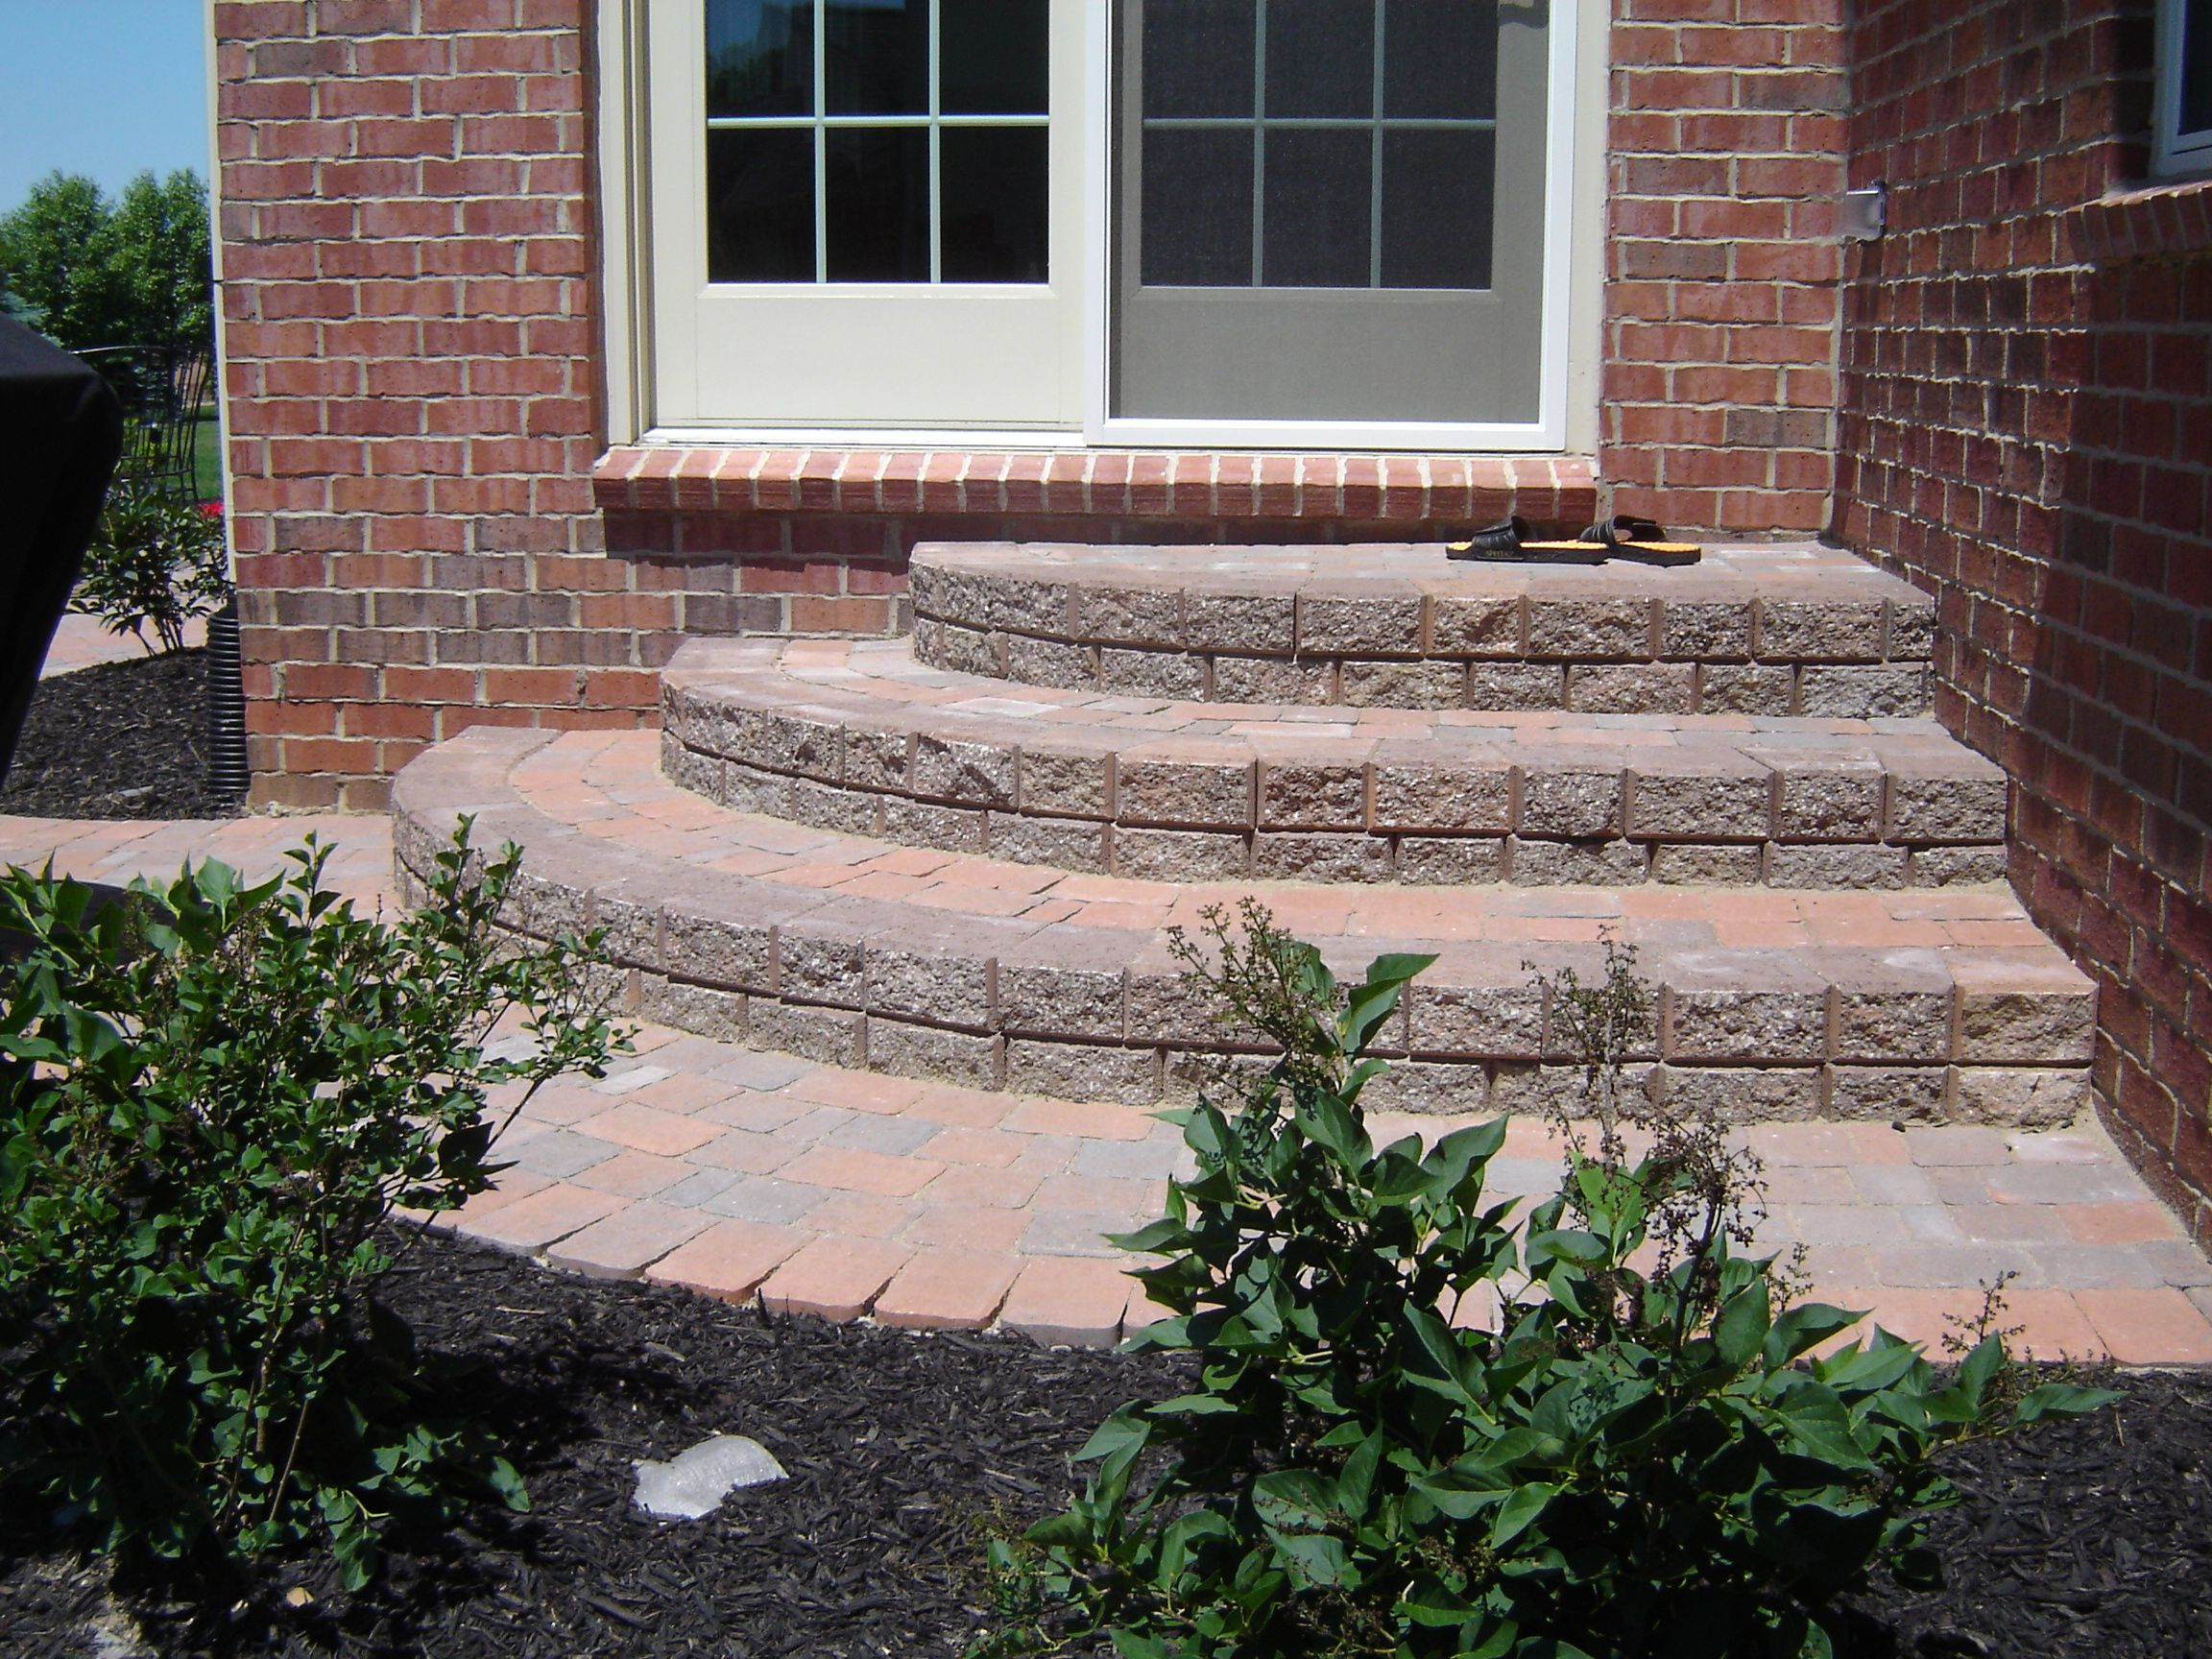 How to build steps with pavers - Backdoor Brick Paver Steps